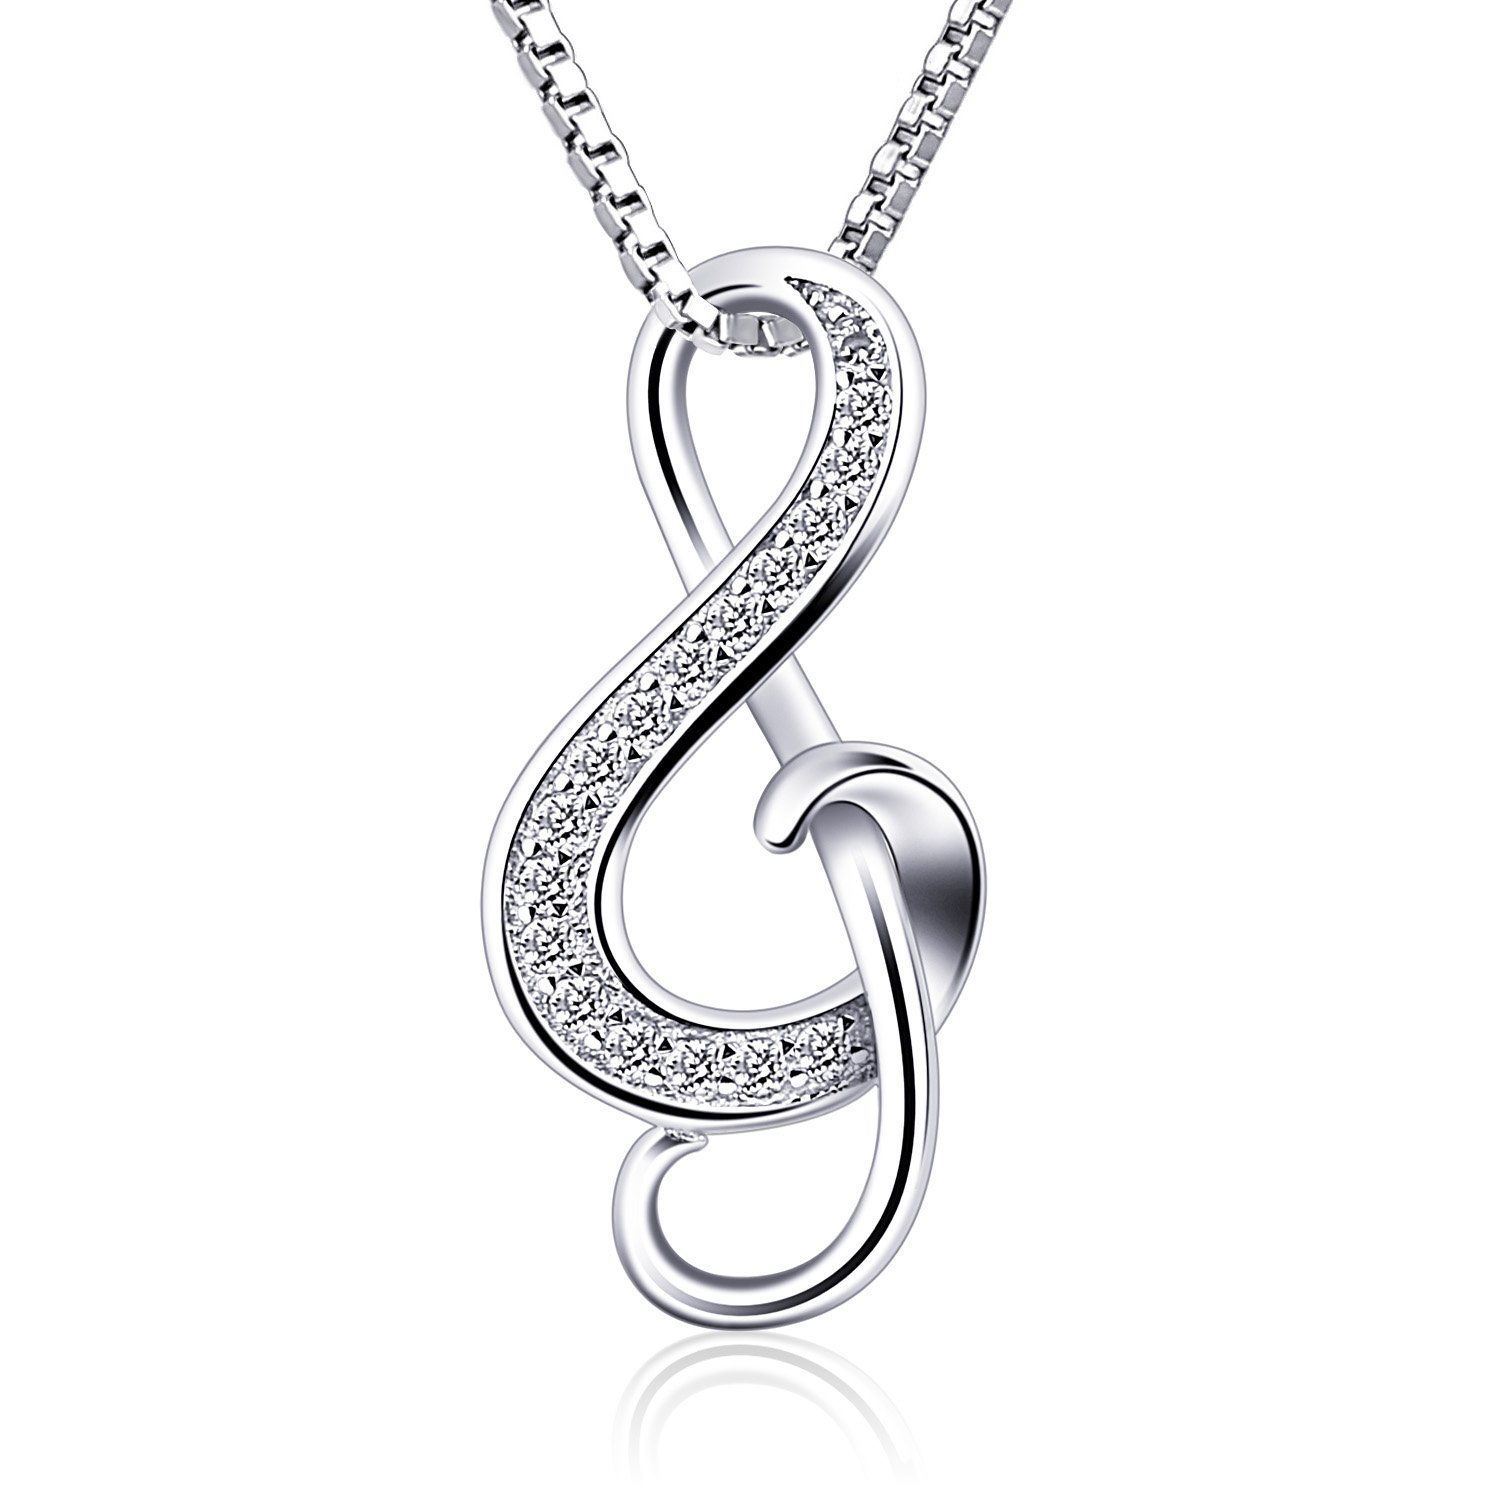 (1) - B.Catcher Silver Necklaces Music Note Pendant Necklace S925 Sterling Silver Women Jewellery BC-49